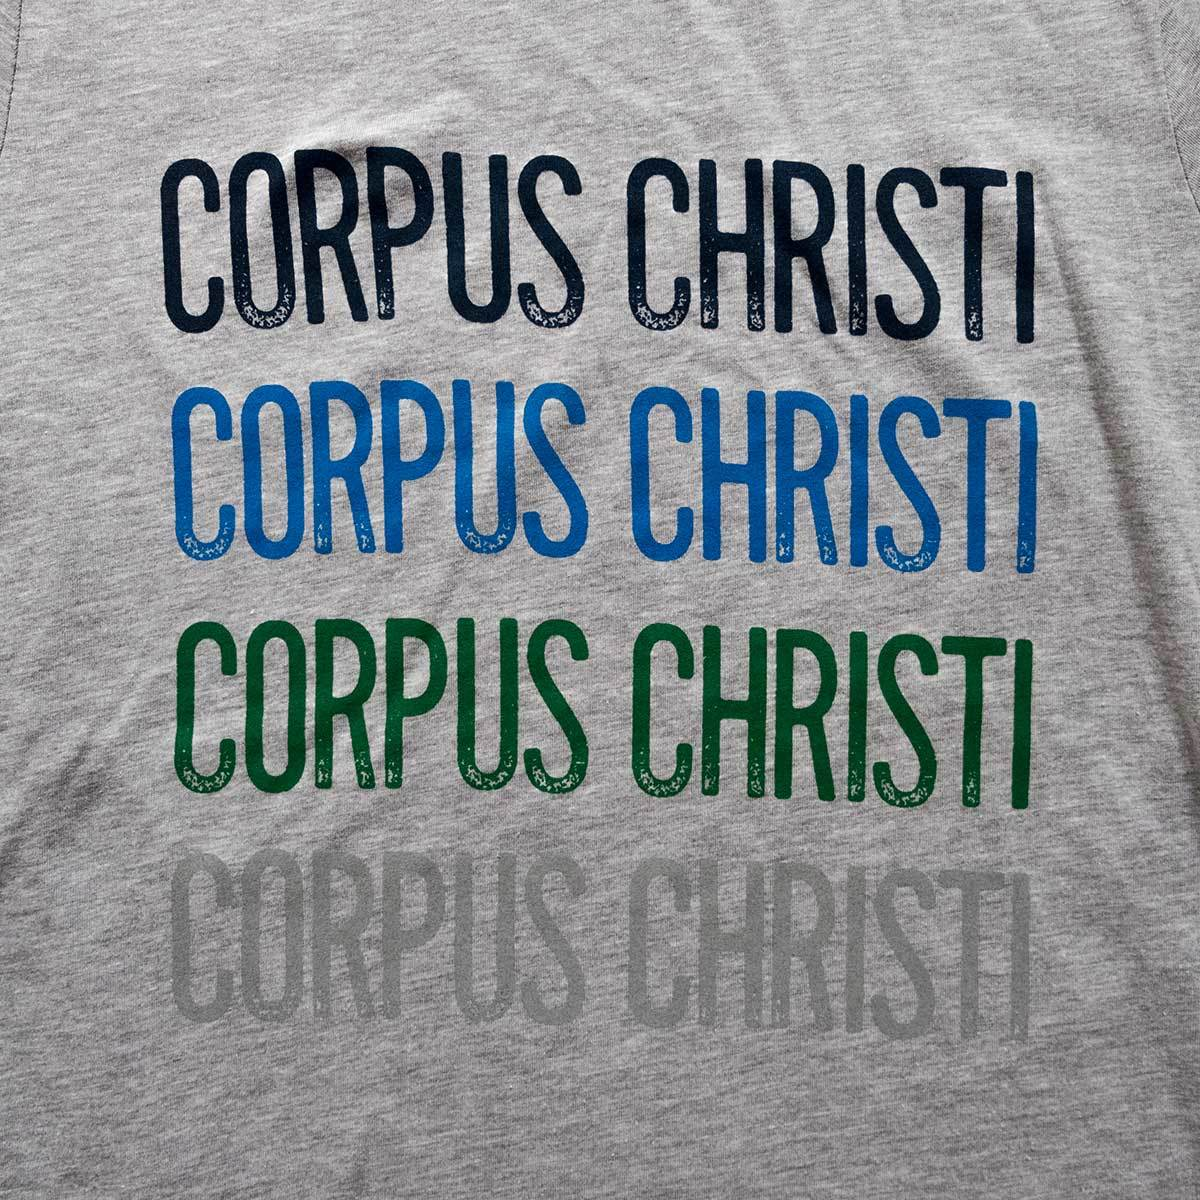 corpus christi single jewish girls The corpus christi jewish community became especially involved in welfare and charity  corpus christi's jewish women placed second in the county,.